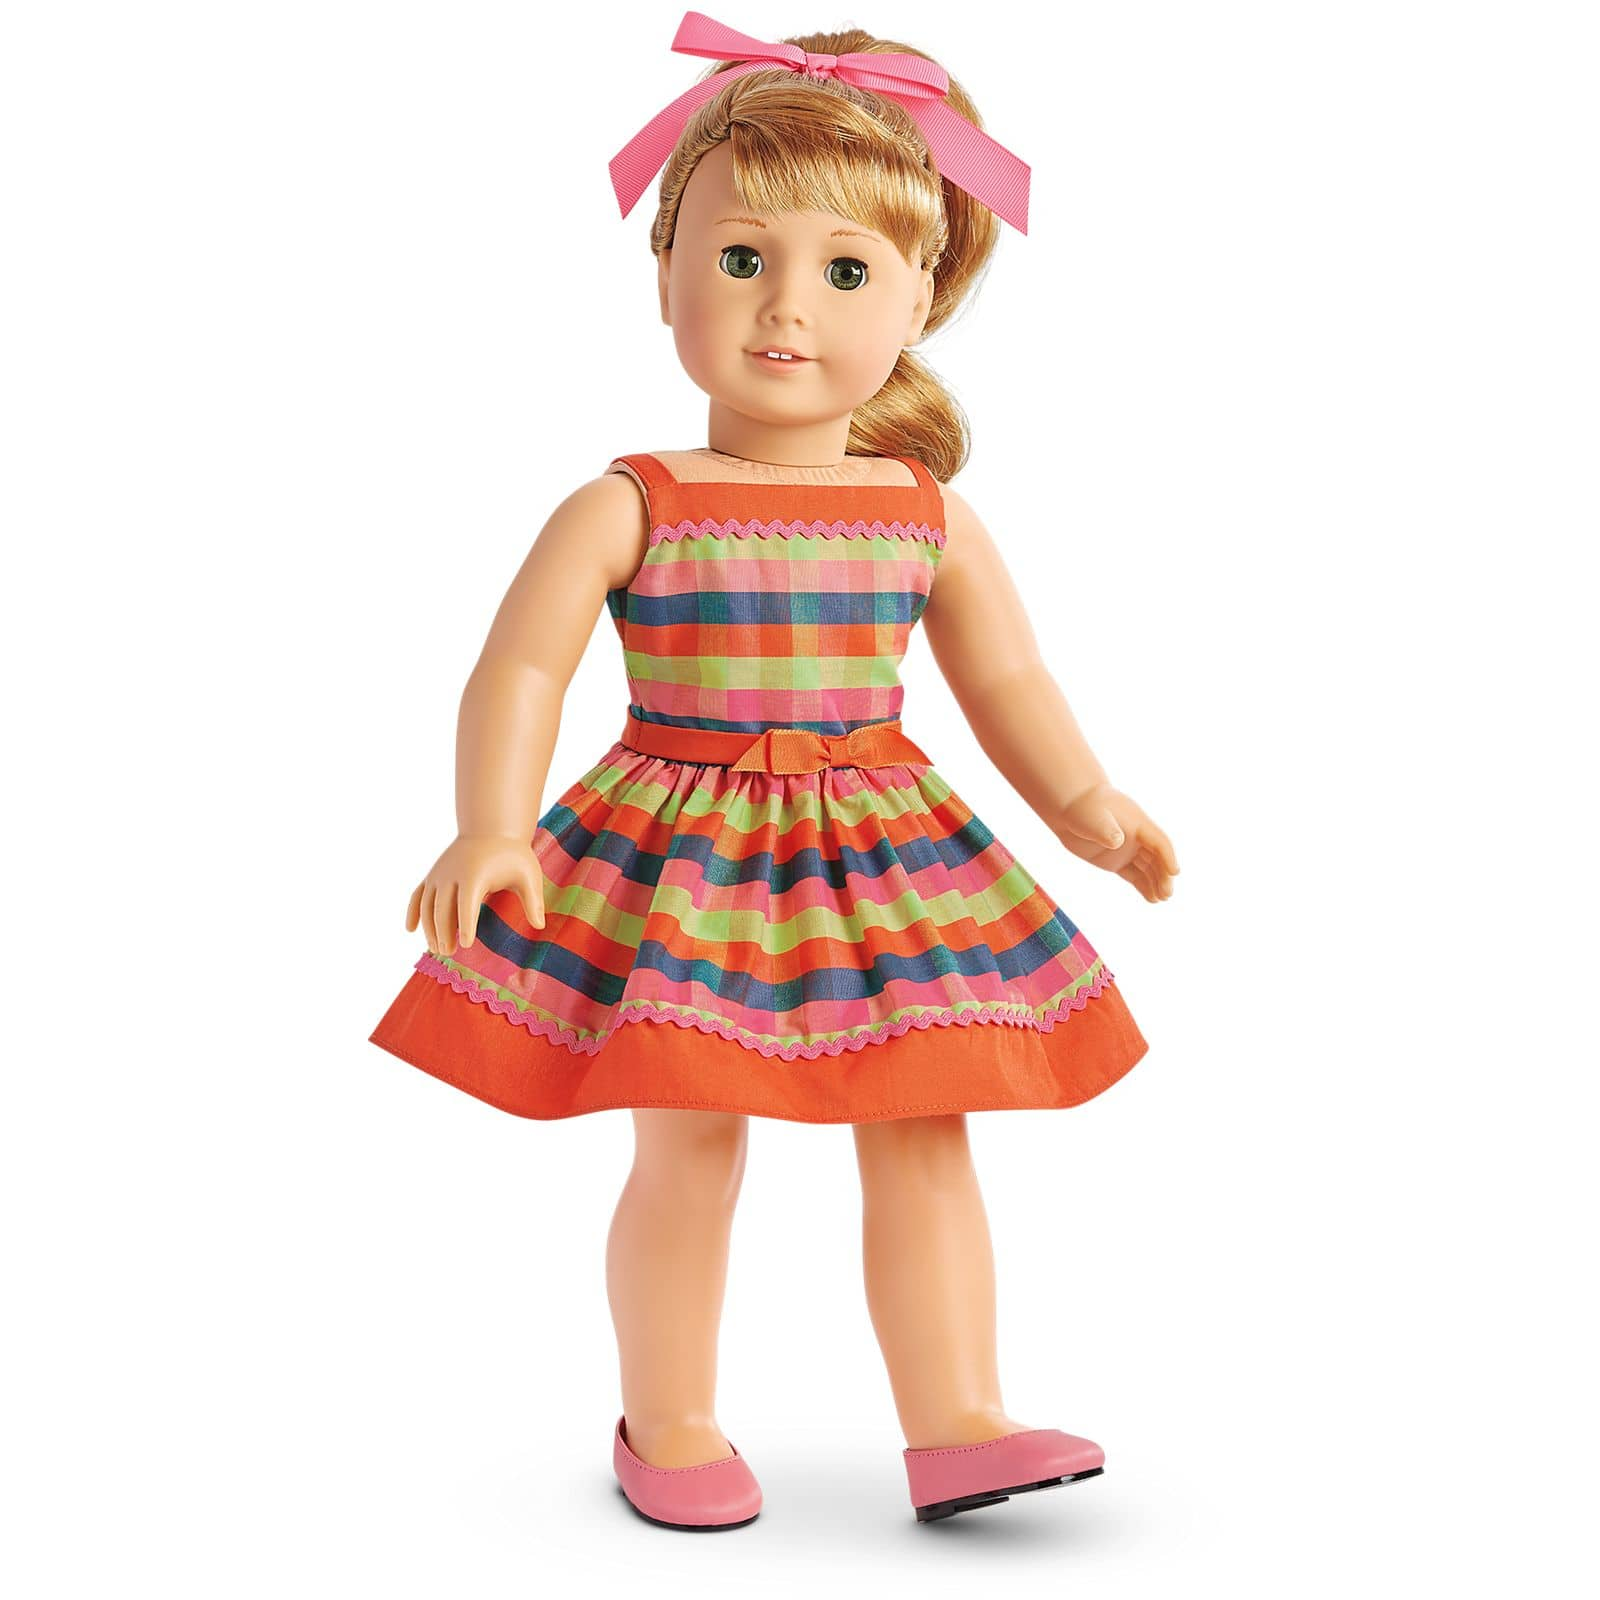 American Girl Maryellen's Rockin' Roller Skating Outfit for 18-inch Dolls